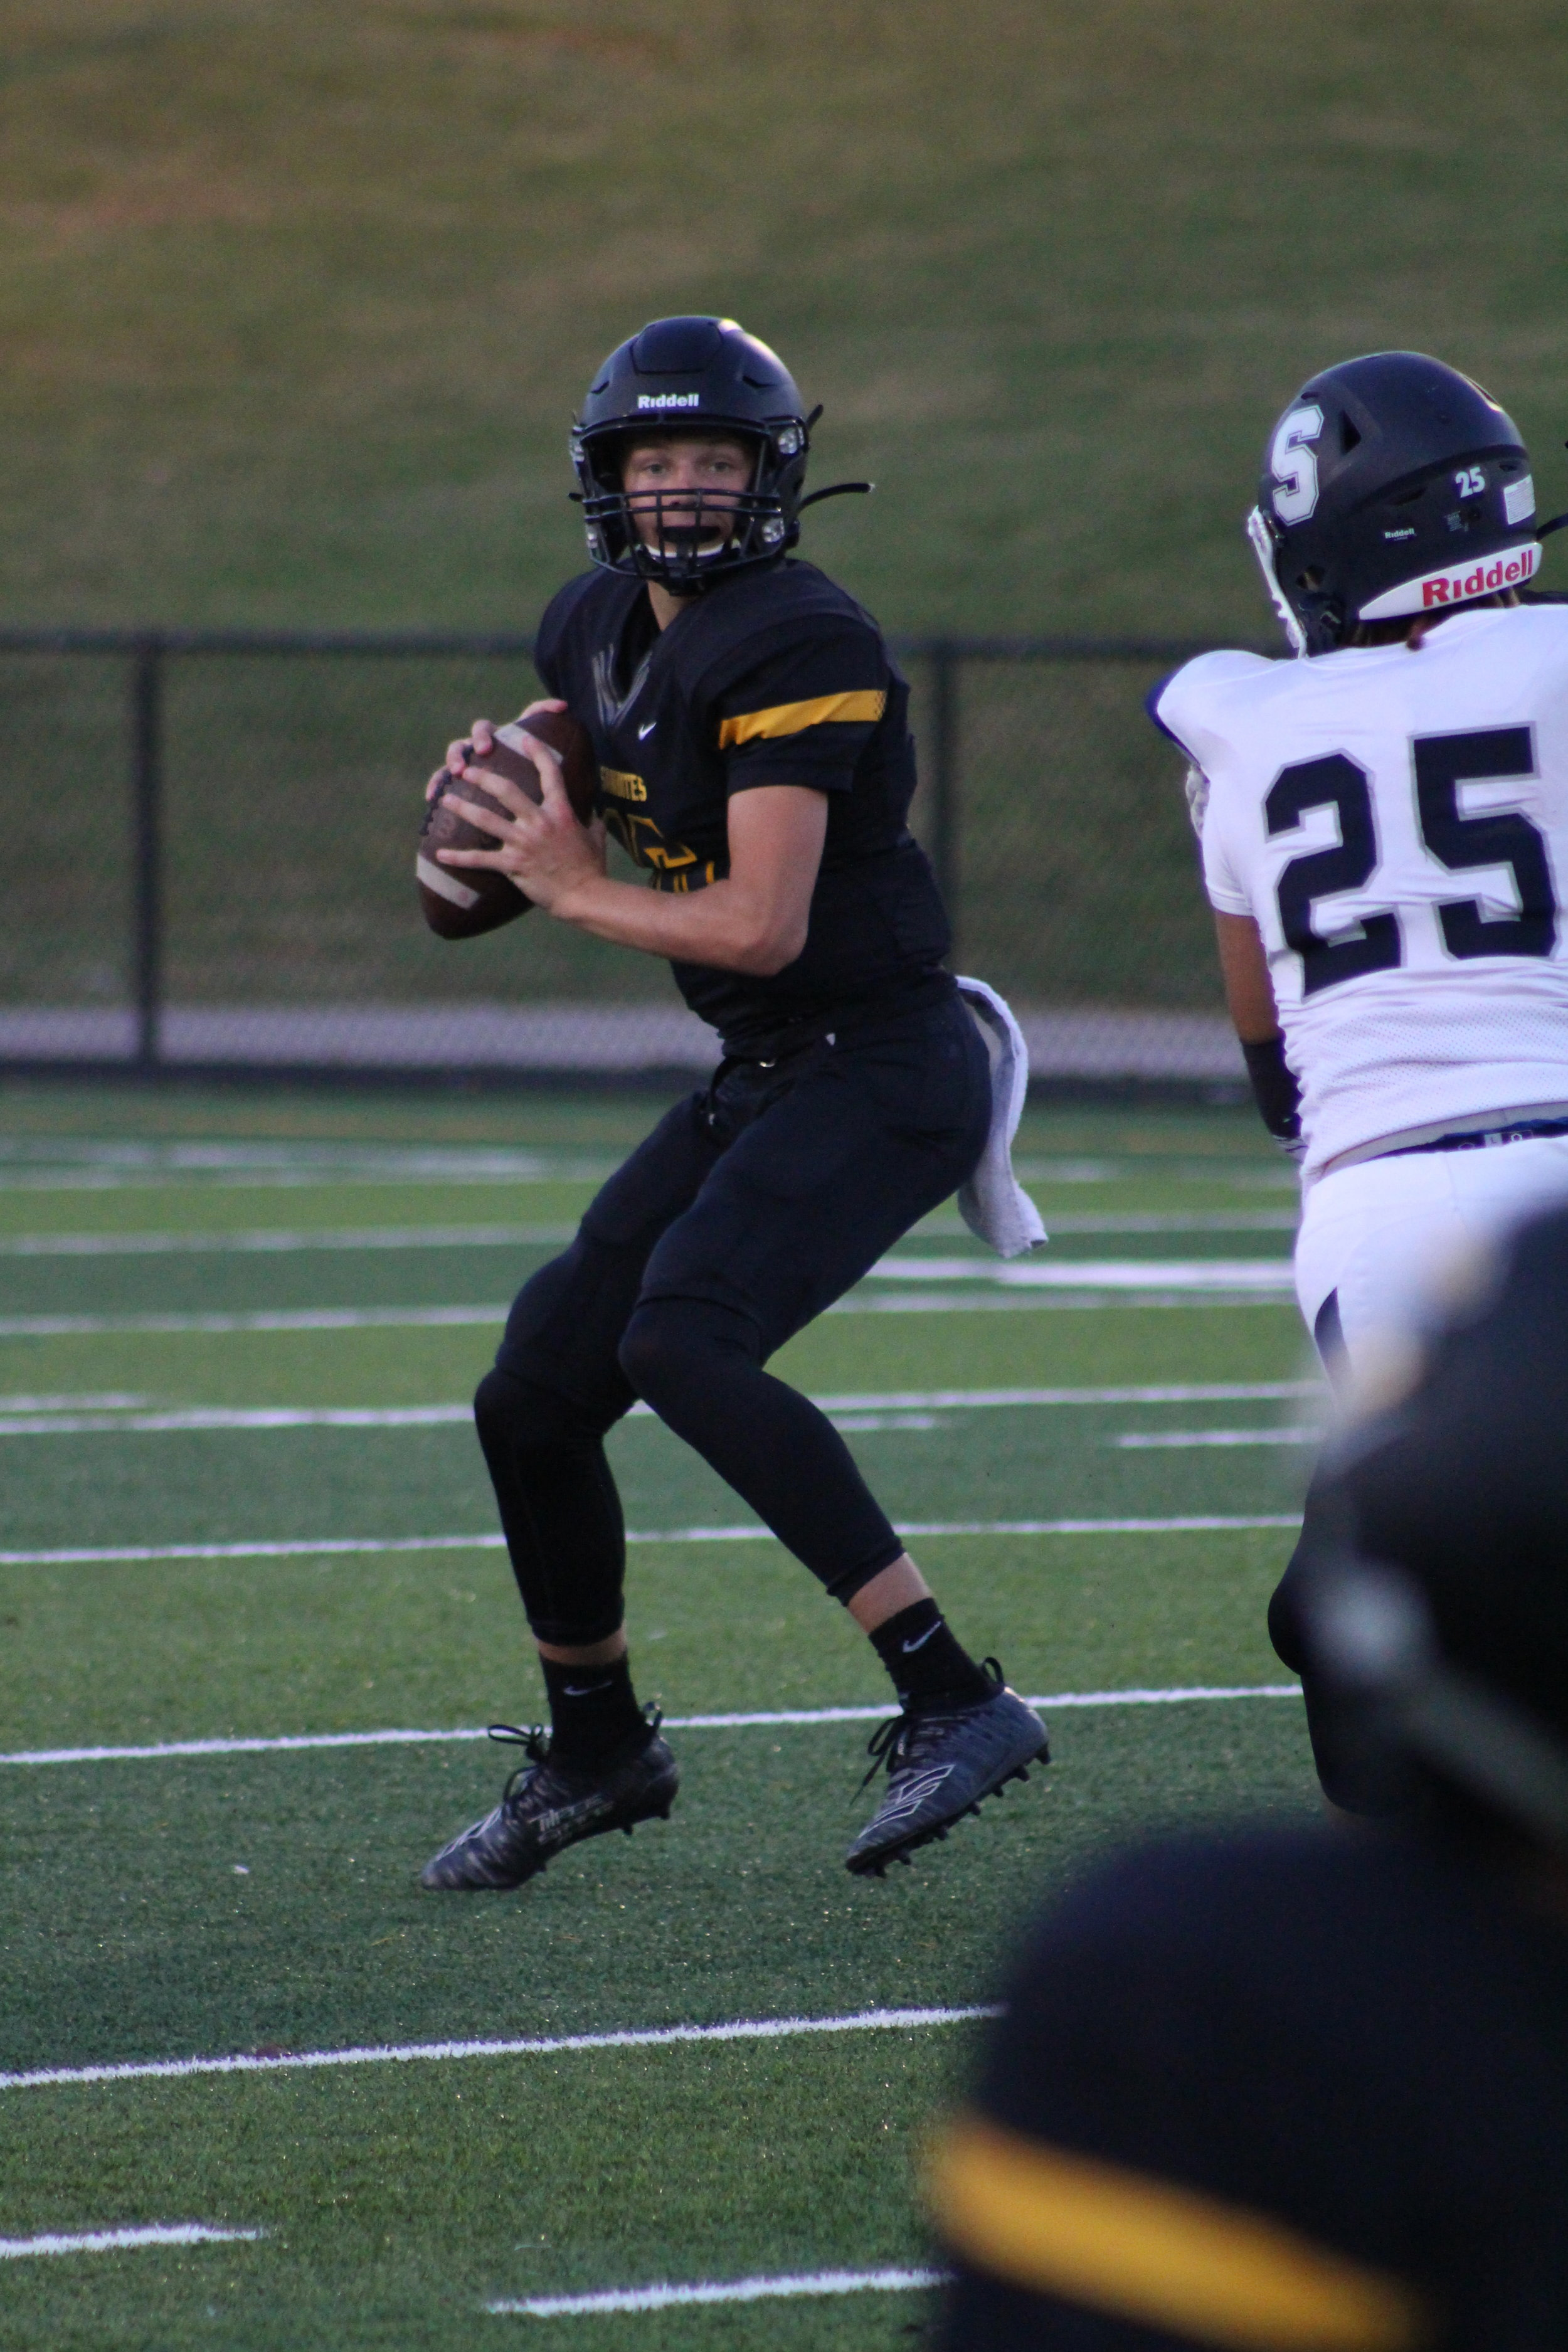 """6'2"""" sophomore Ty Pennington looks for an open receiver while under pressure from Justin Simpson. Pennington finished the night 13-27-143-0 with one touchdown against Shawnee. He has 7 touchdowns and 0 interceptions this season."""